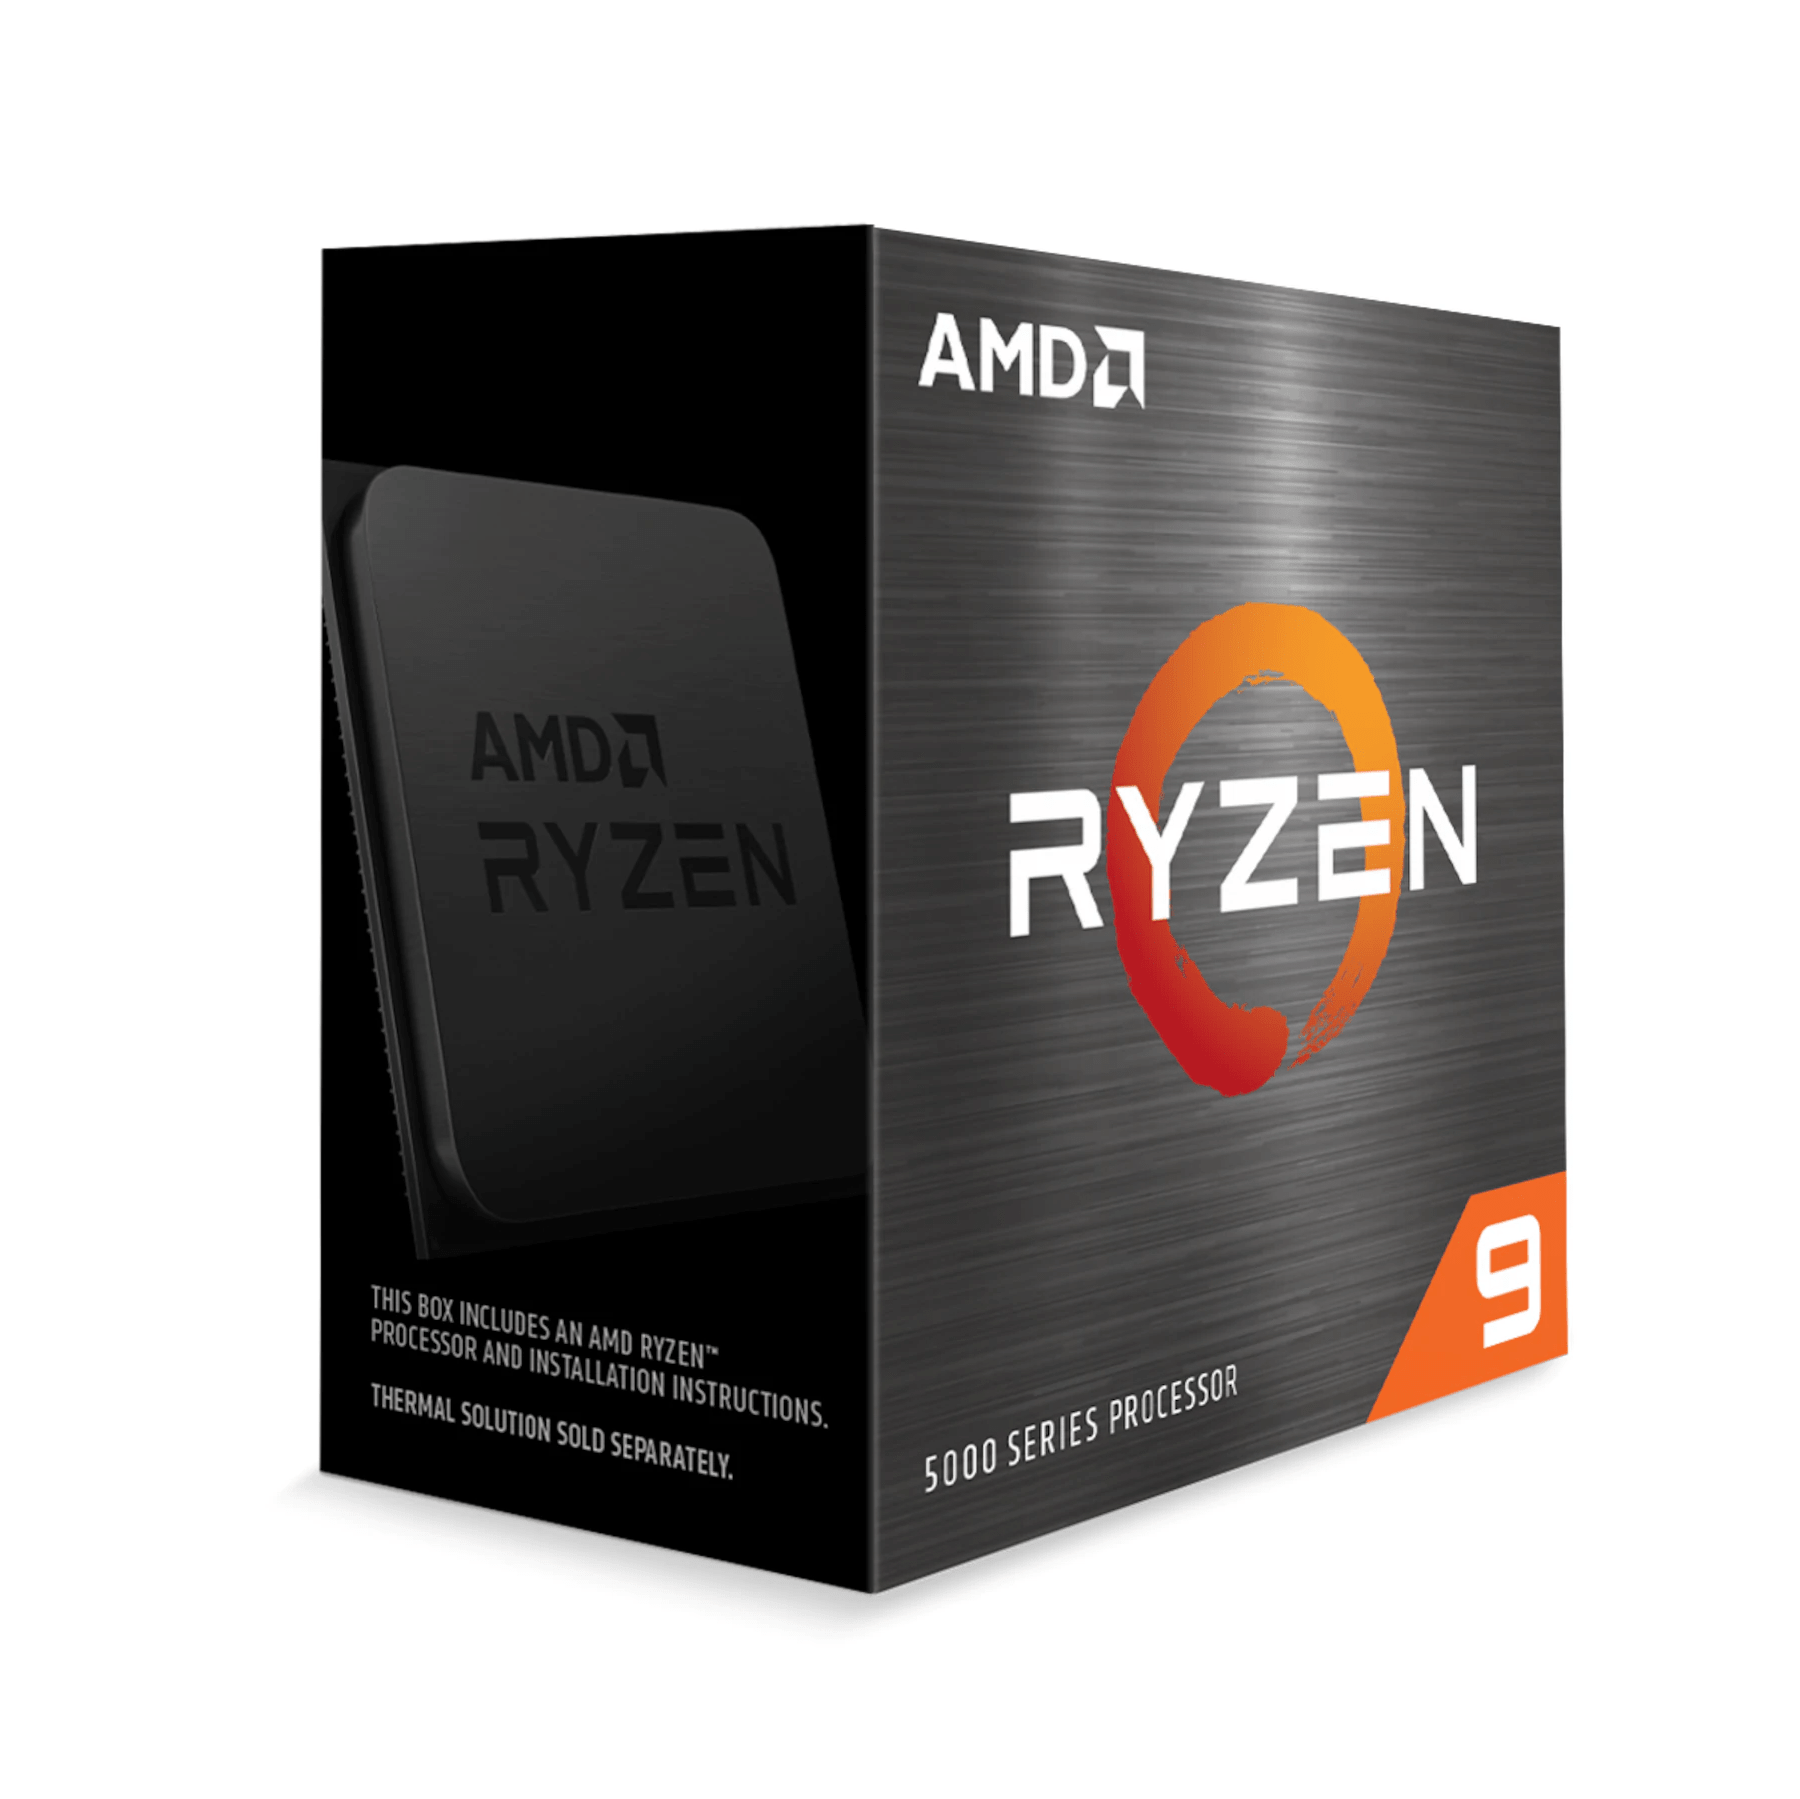 AMD Ryzen 9 5900X, 12-Core 24-Thread 4.8GHz